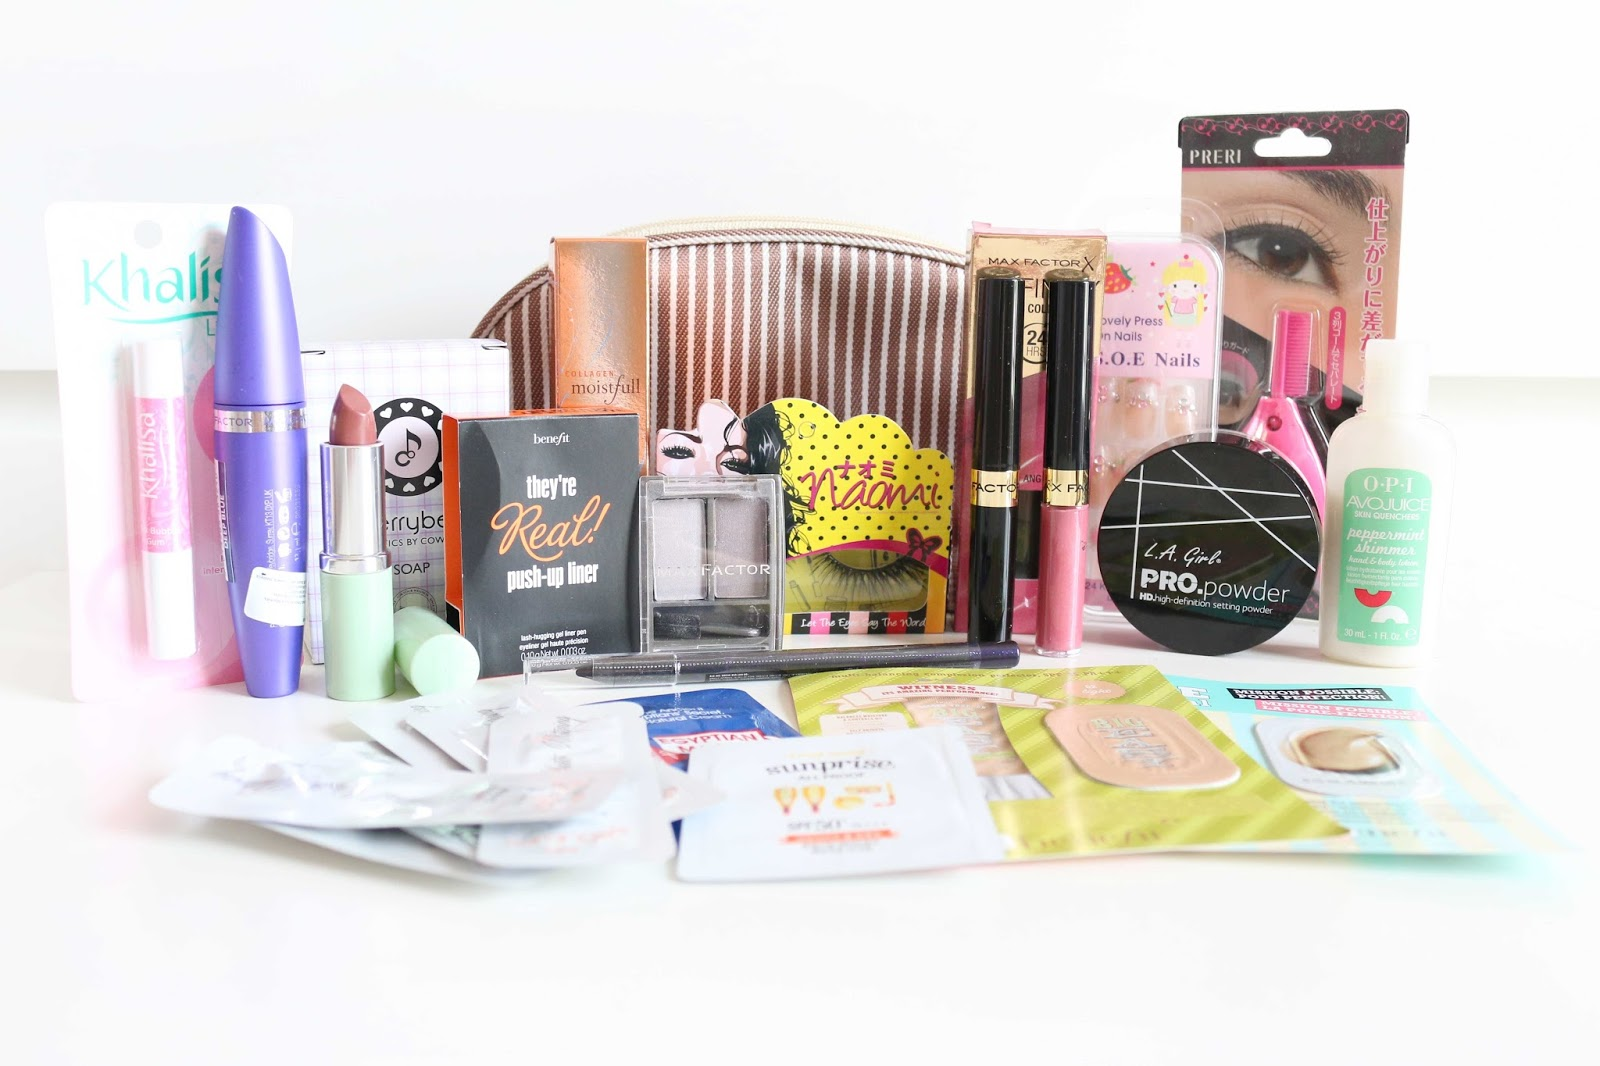 jean milka, beauty blog, giveaway, indonesia, makeup, give away, benefit, lancome, etude house, make over, la girl, cathy doll, tony moly, max factor, clinique, maybelline,